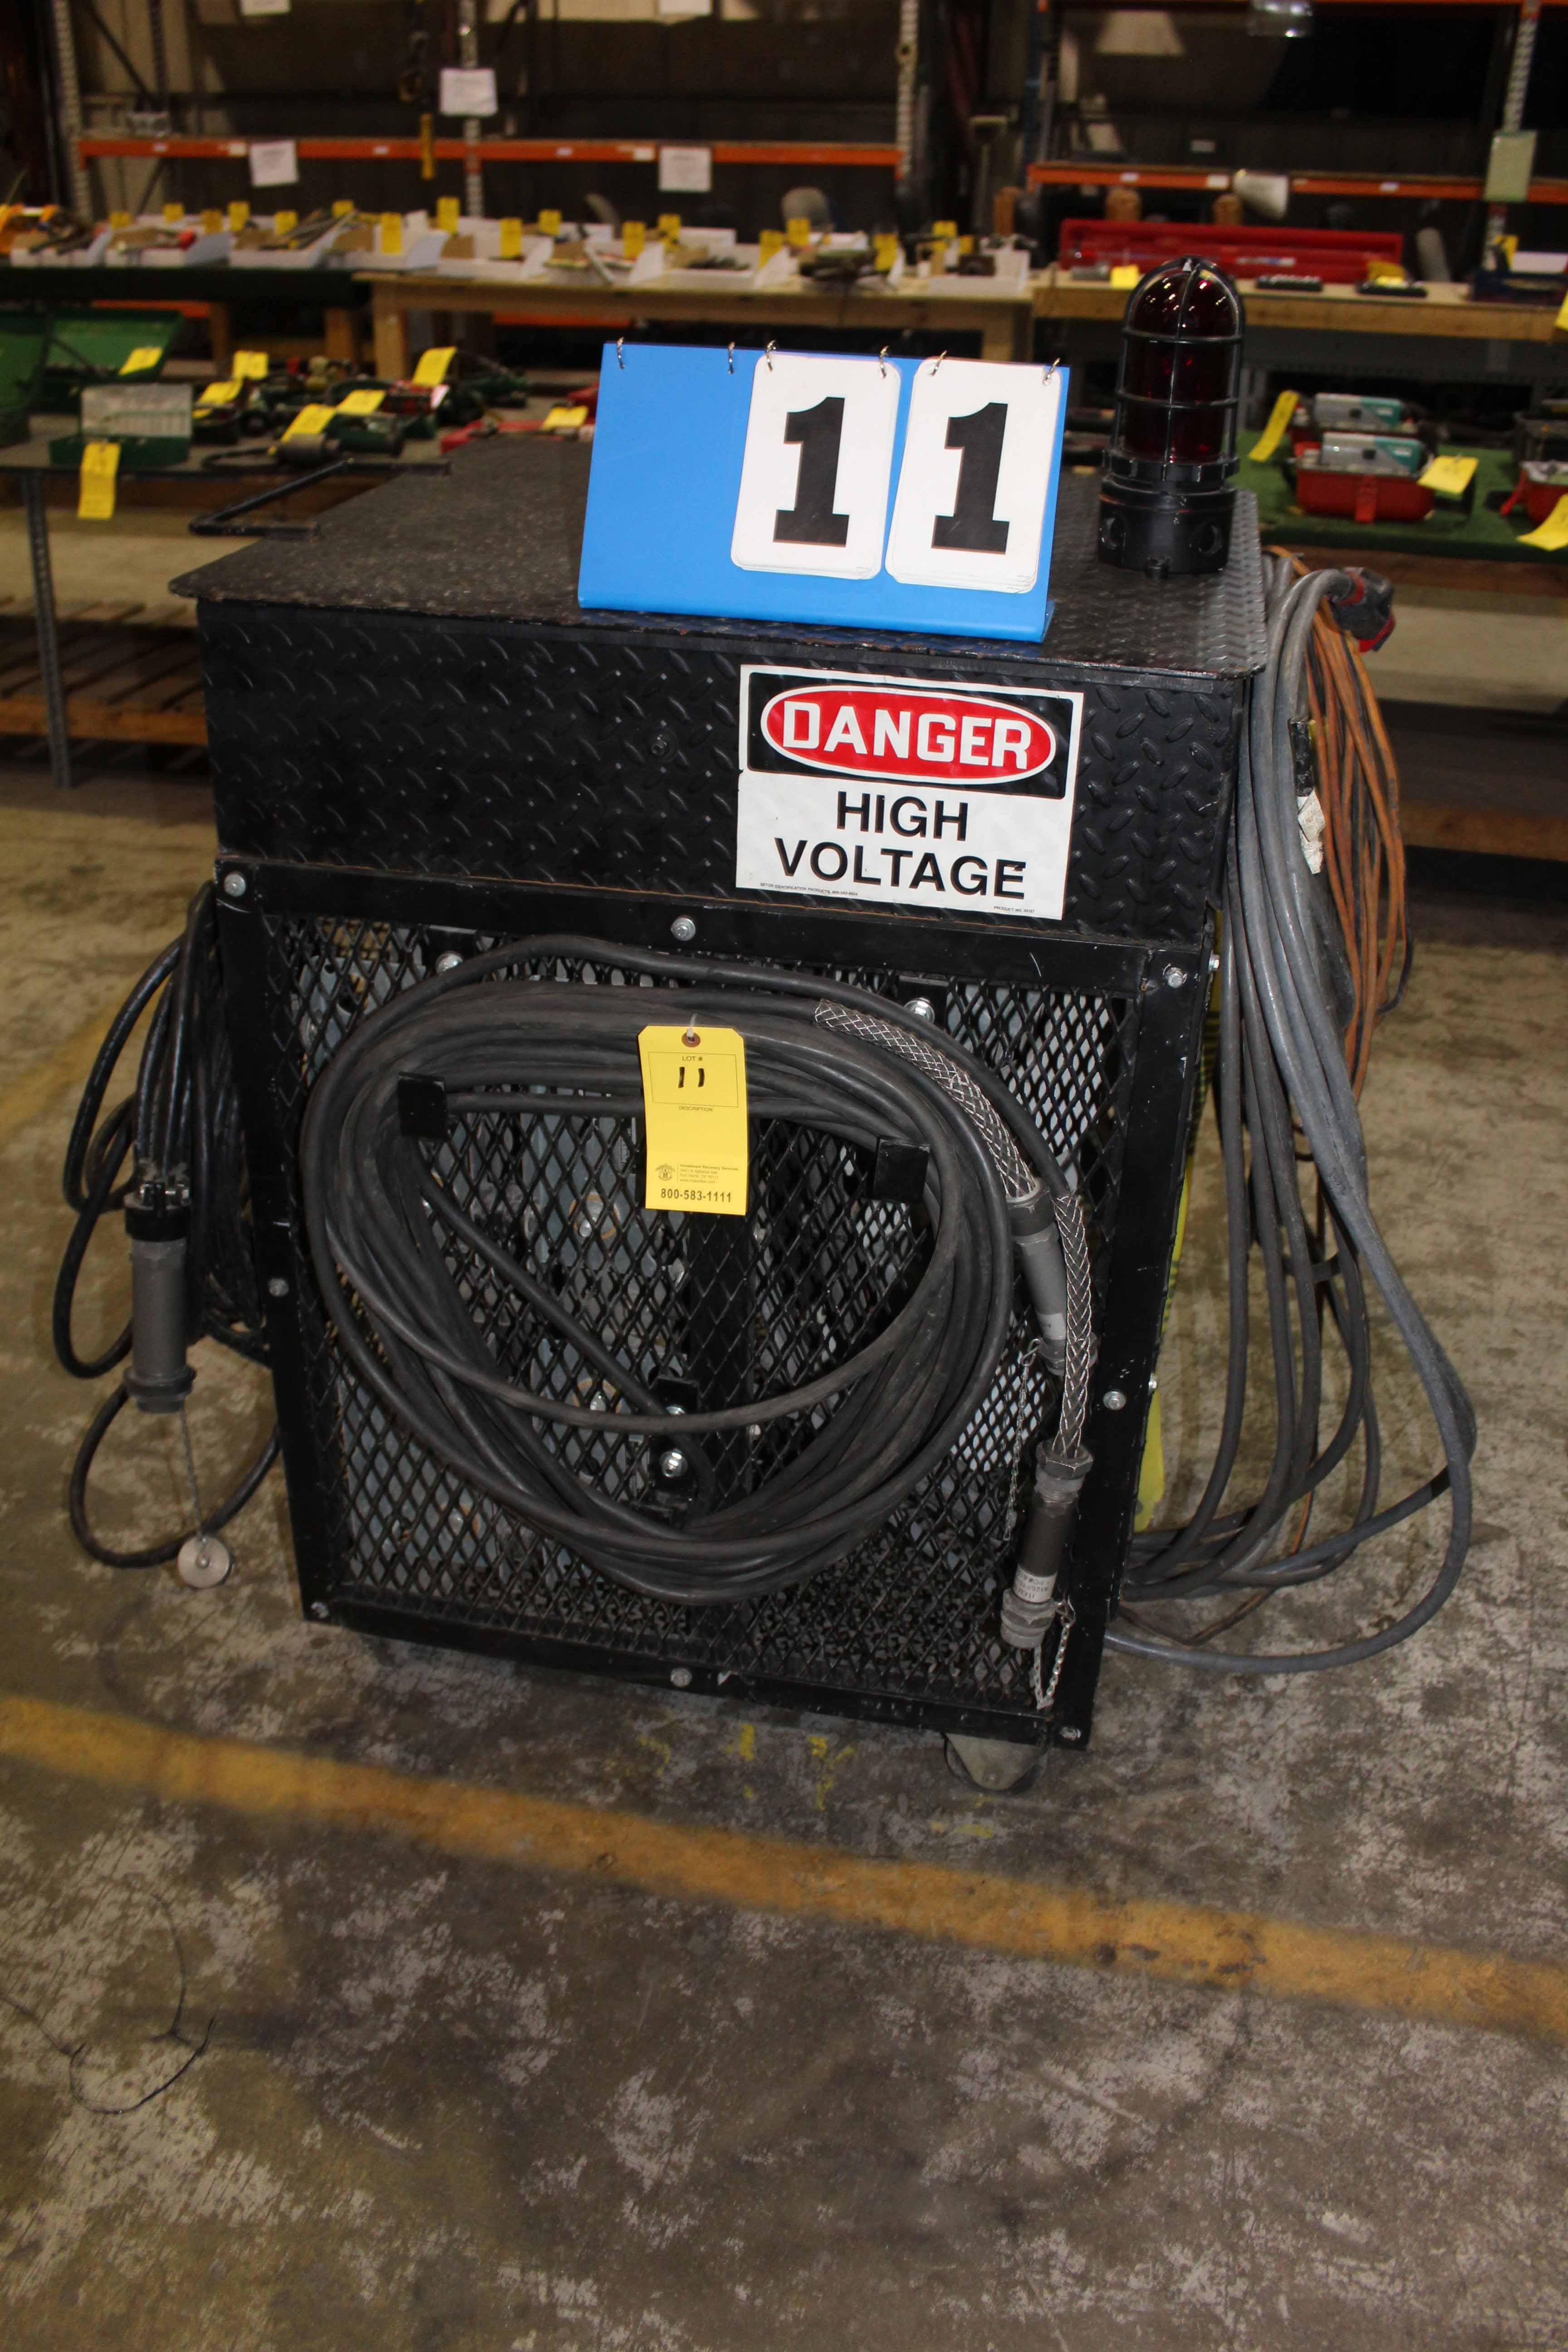 Lot 11 - HIGH VOLTAGE BUILDING TESTER, CUSTOM